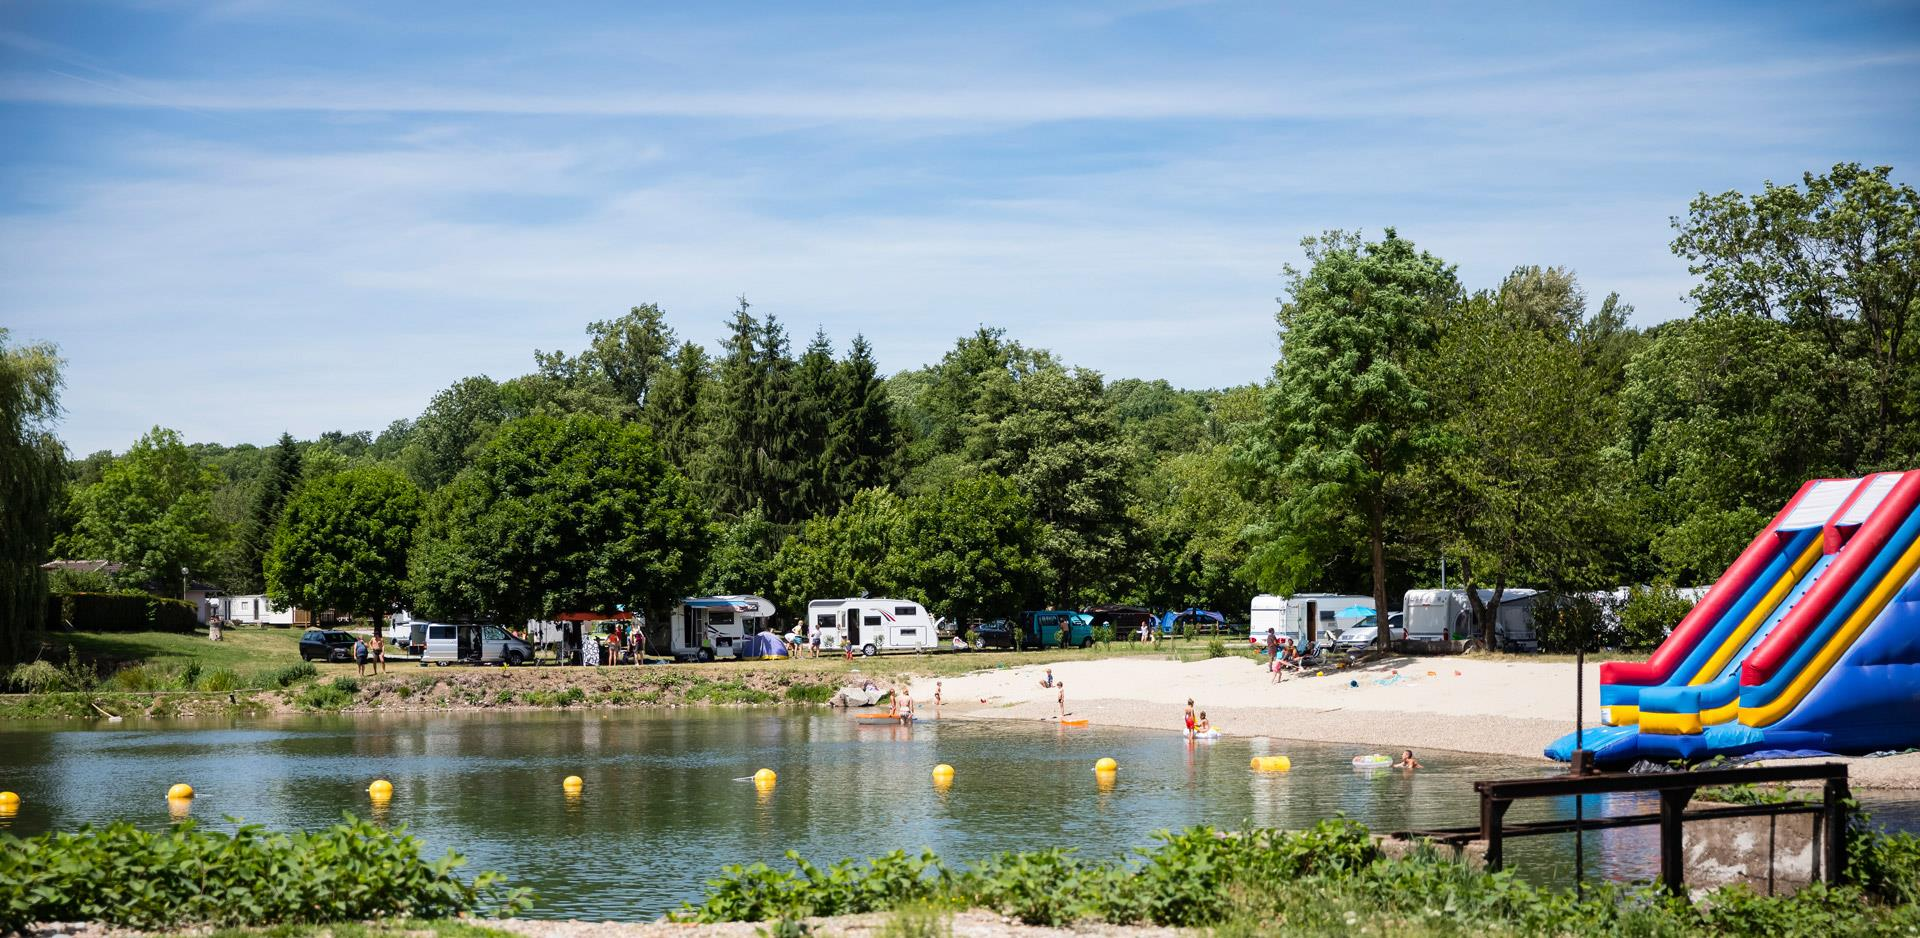 Camping at the beach, lake side, by the river in Alsace